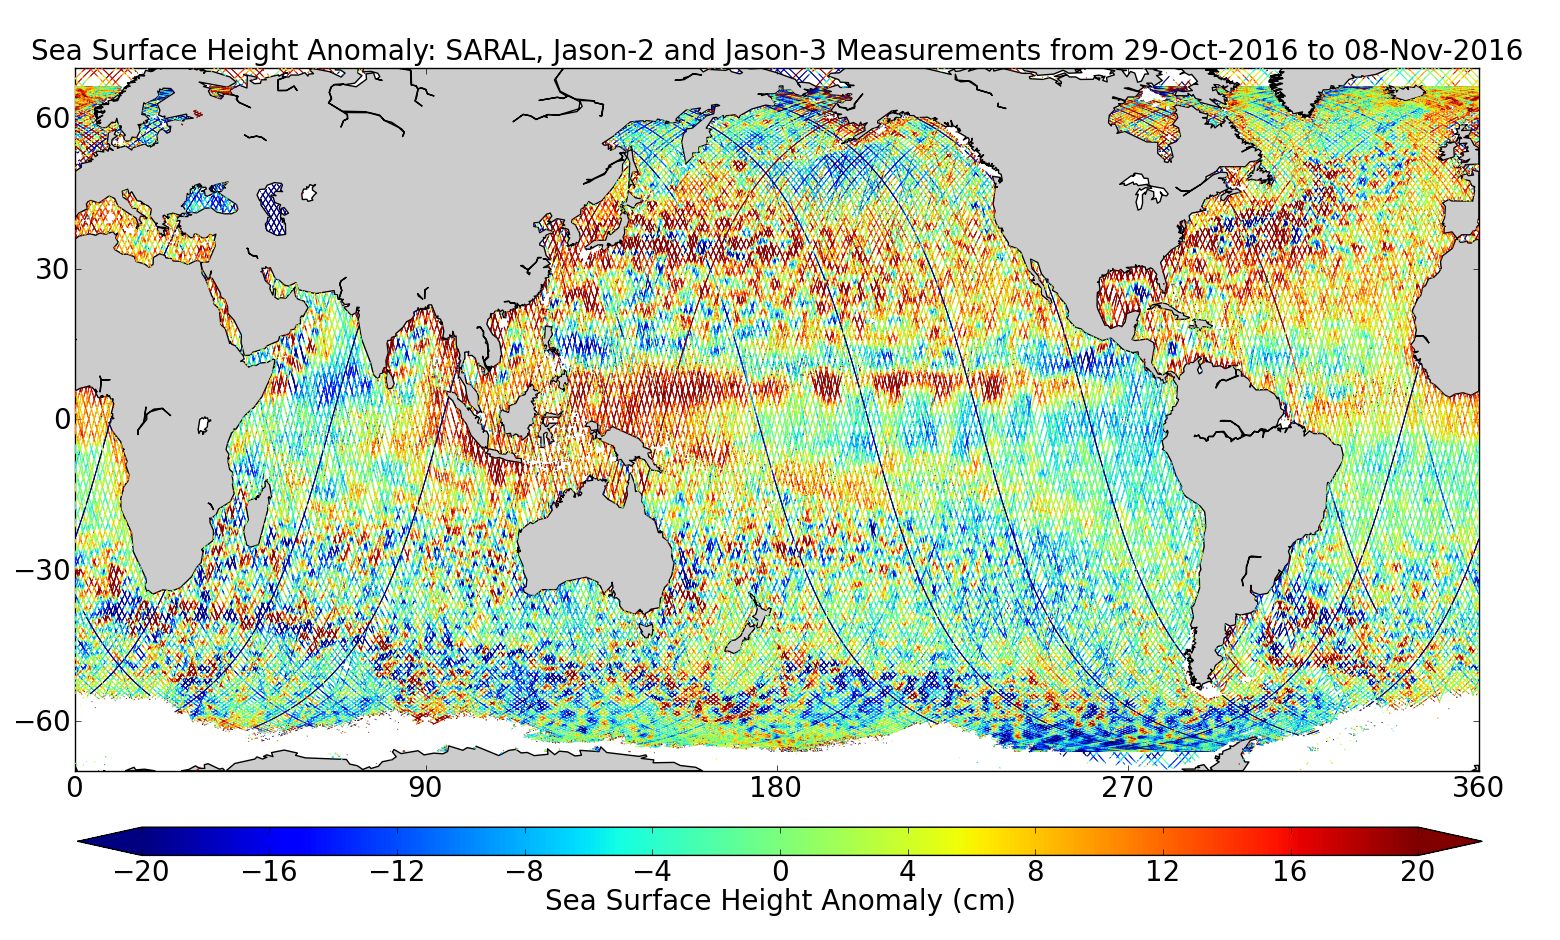 Sea Surface Height Anomaly: SARAL, Jason-2 and Jason-3 Measurements from 29-Oct-2016 to 08-Nov-2016